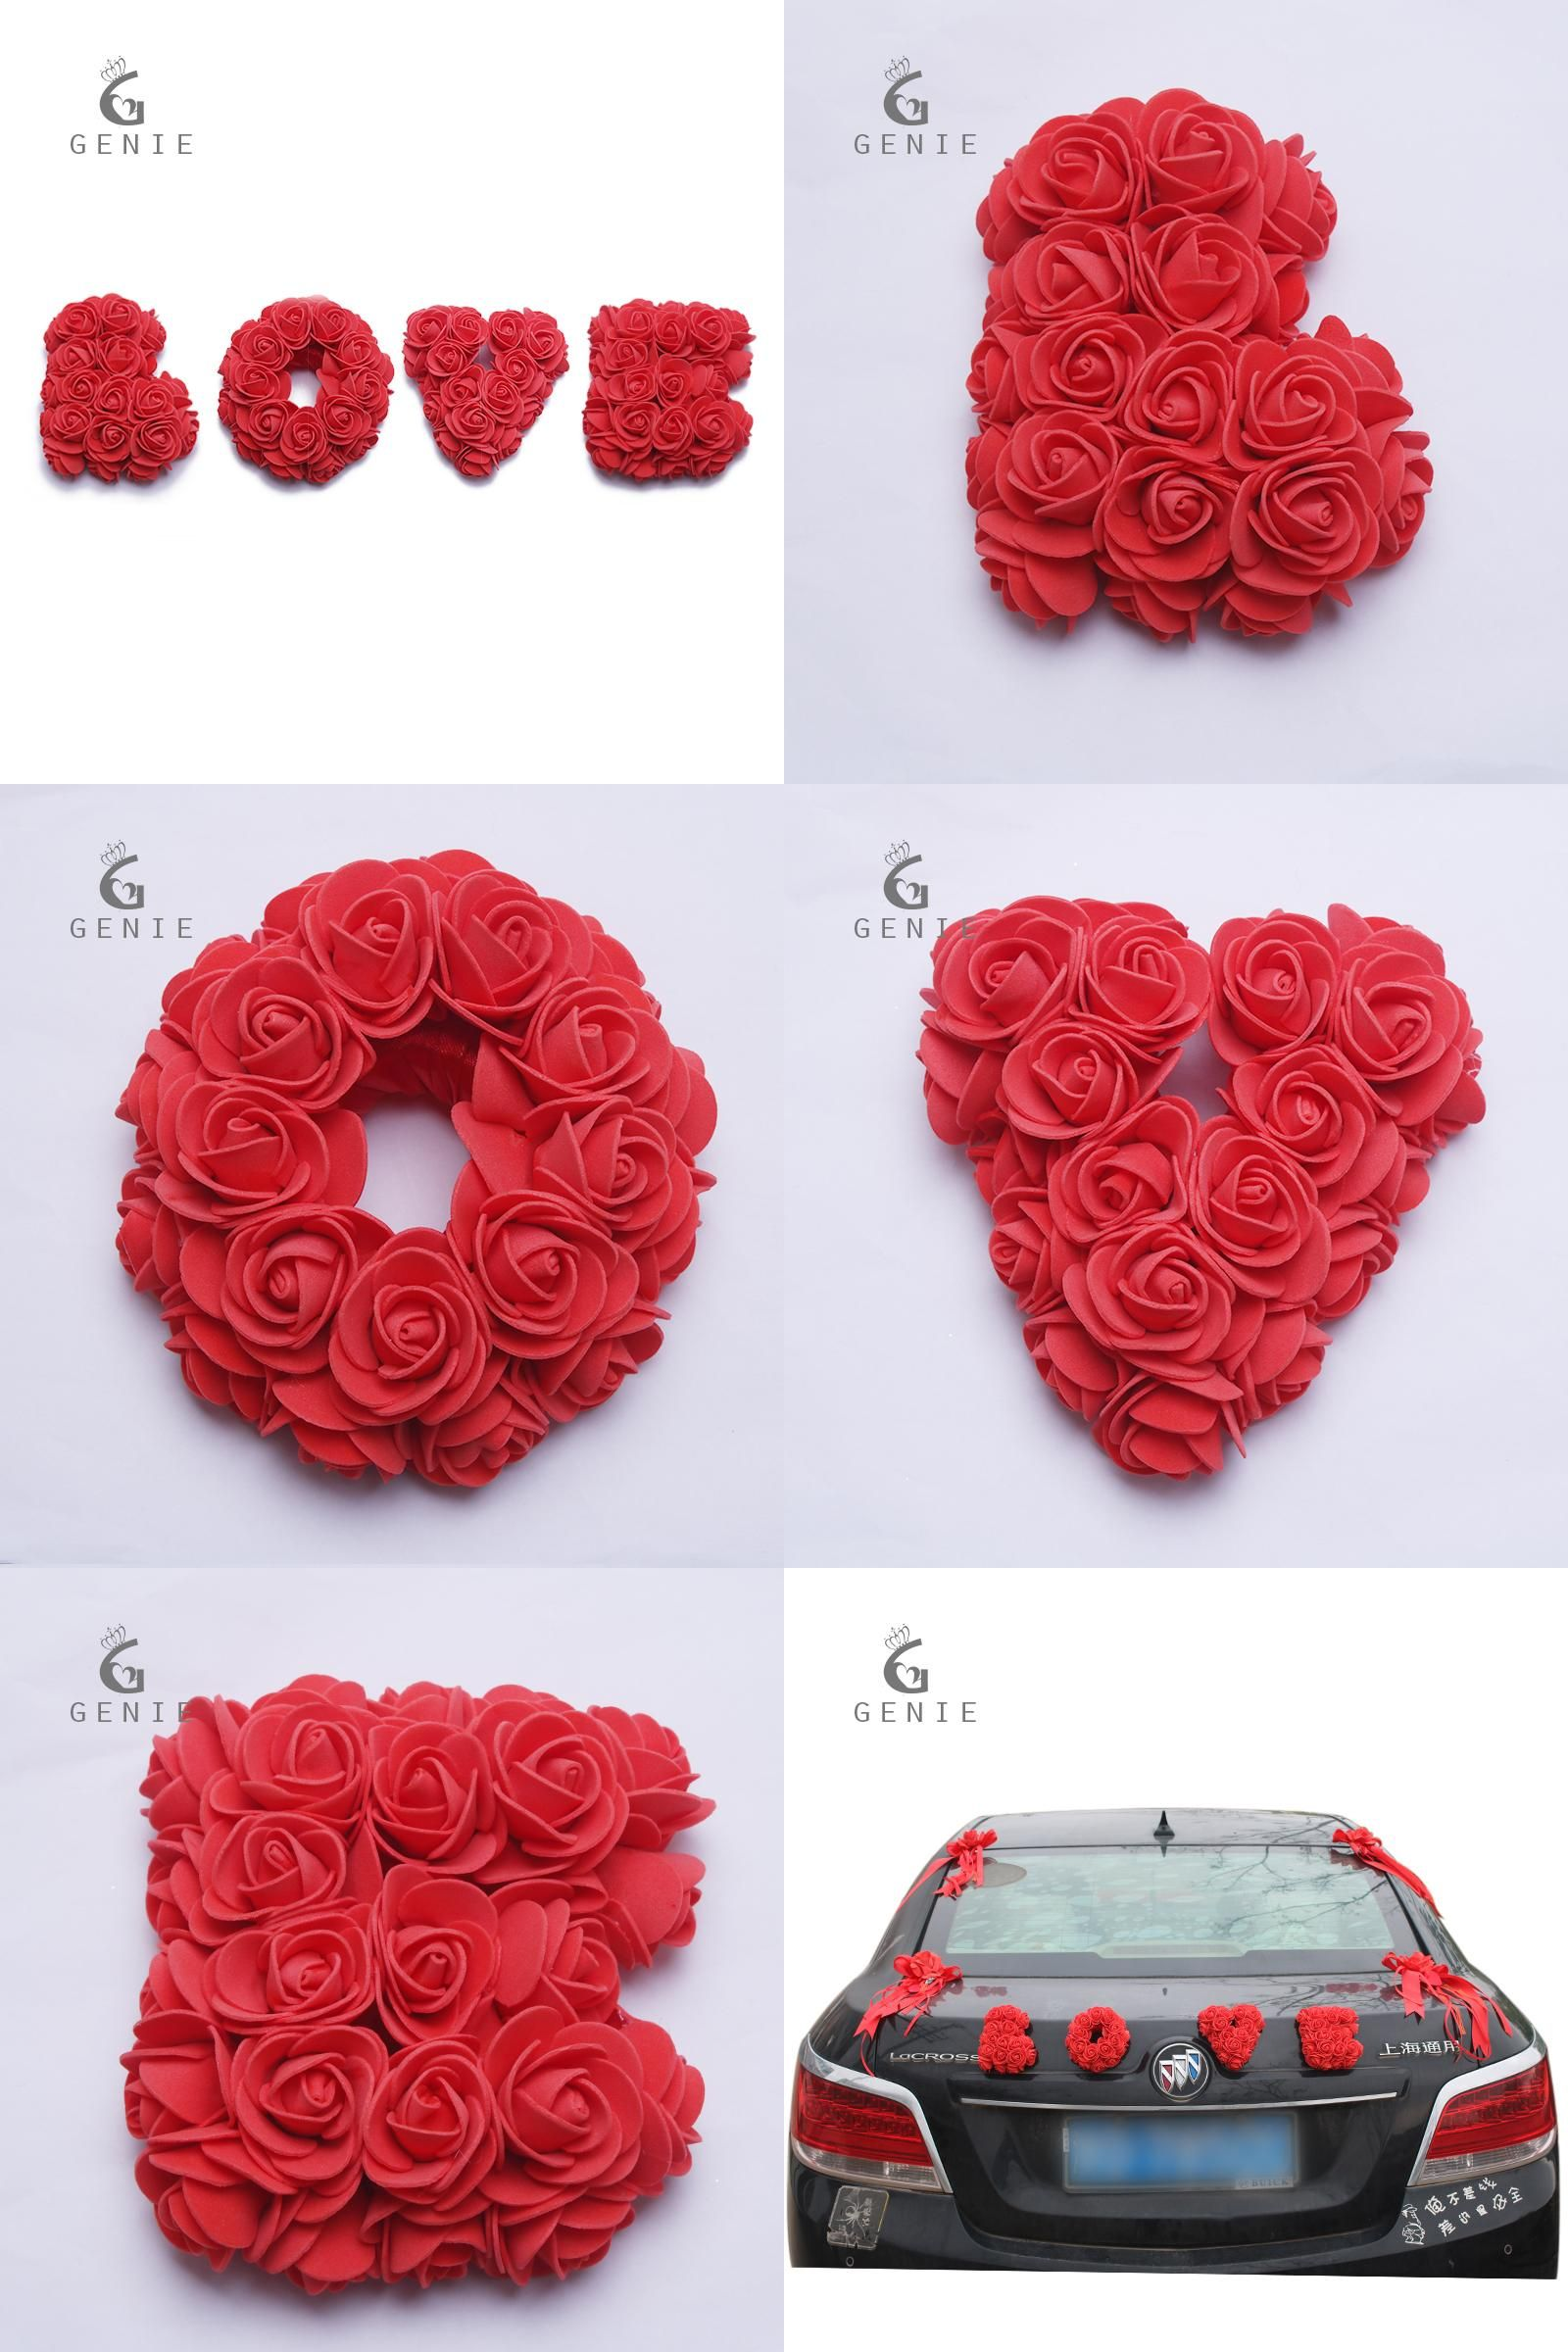 Visit to buy genie rose artificial flowers foam rose cute letter cheap decorative wreath buy quality rose artificial directly from china flower arch suppliers genie rose artificial flowers foam rose cute letter love diy izmirmasajfo Choice Image